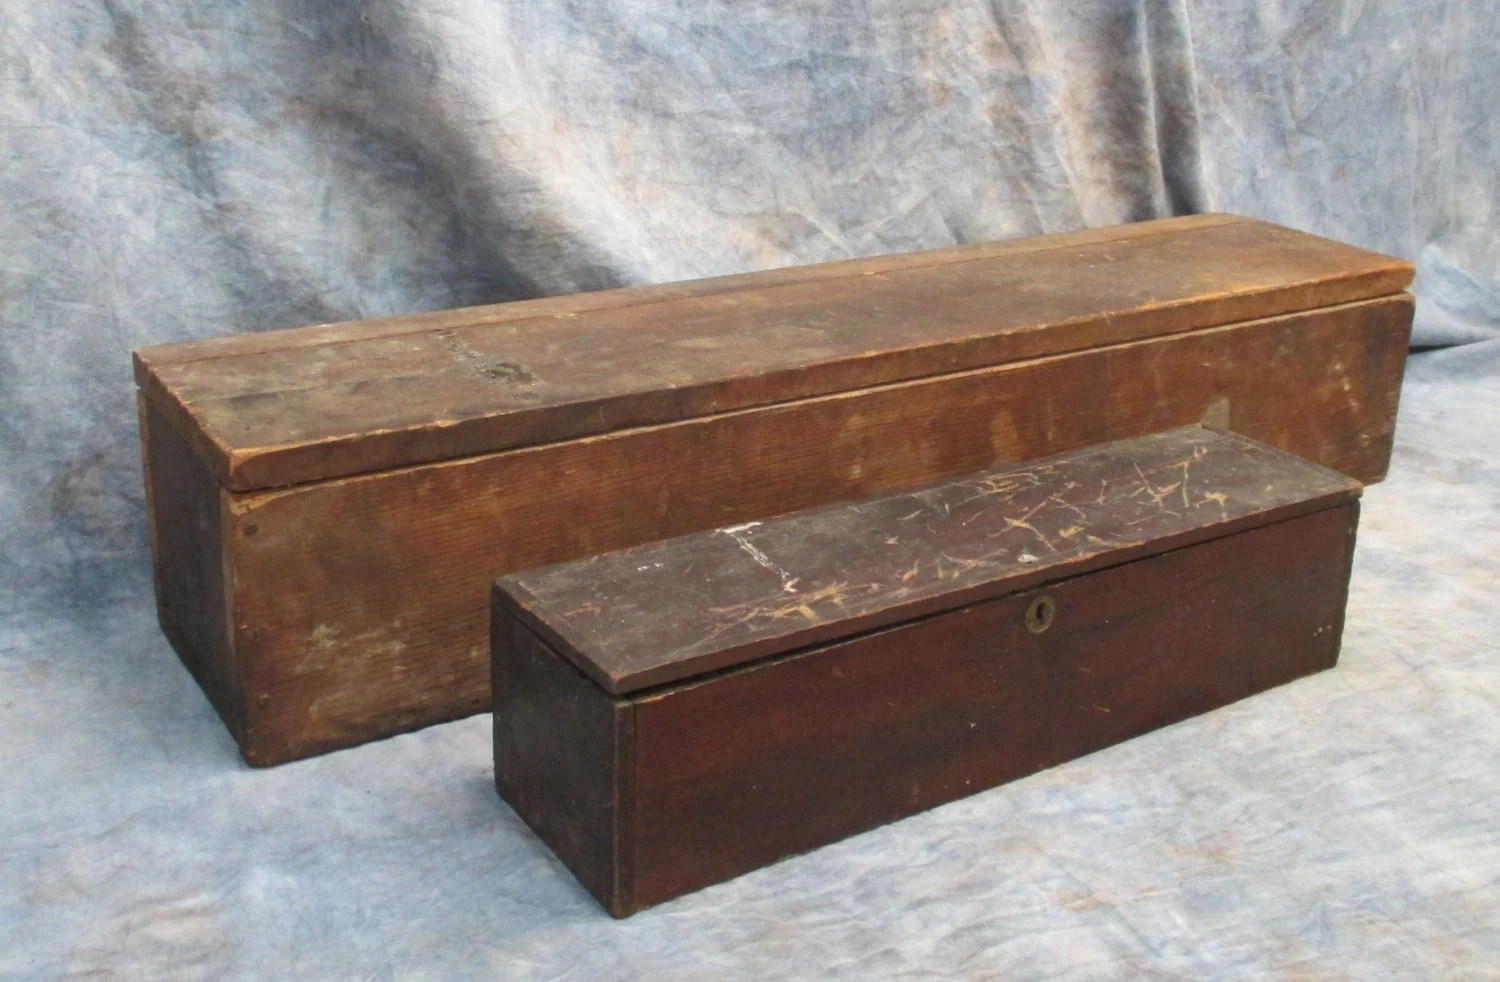 2 Long Thin Wood Boxes Primitive Trunk Storage Shipping